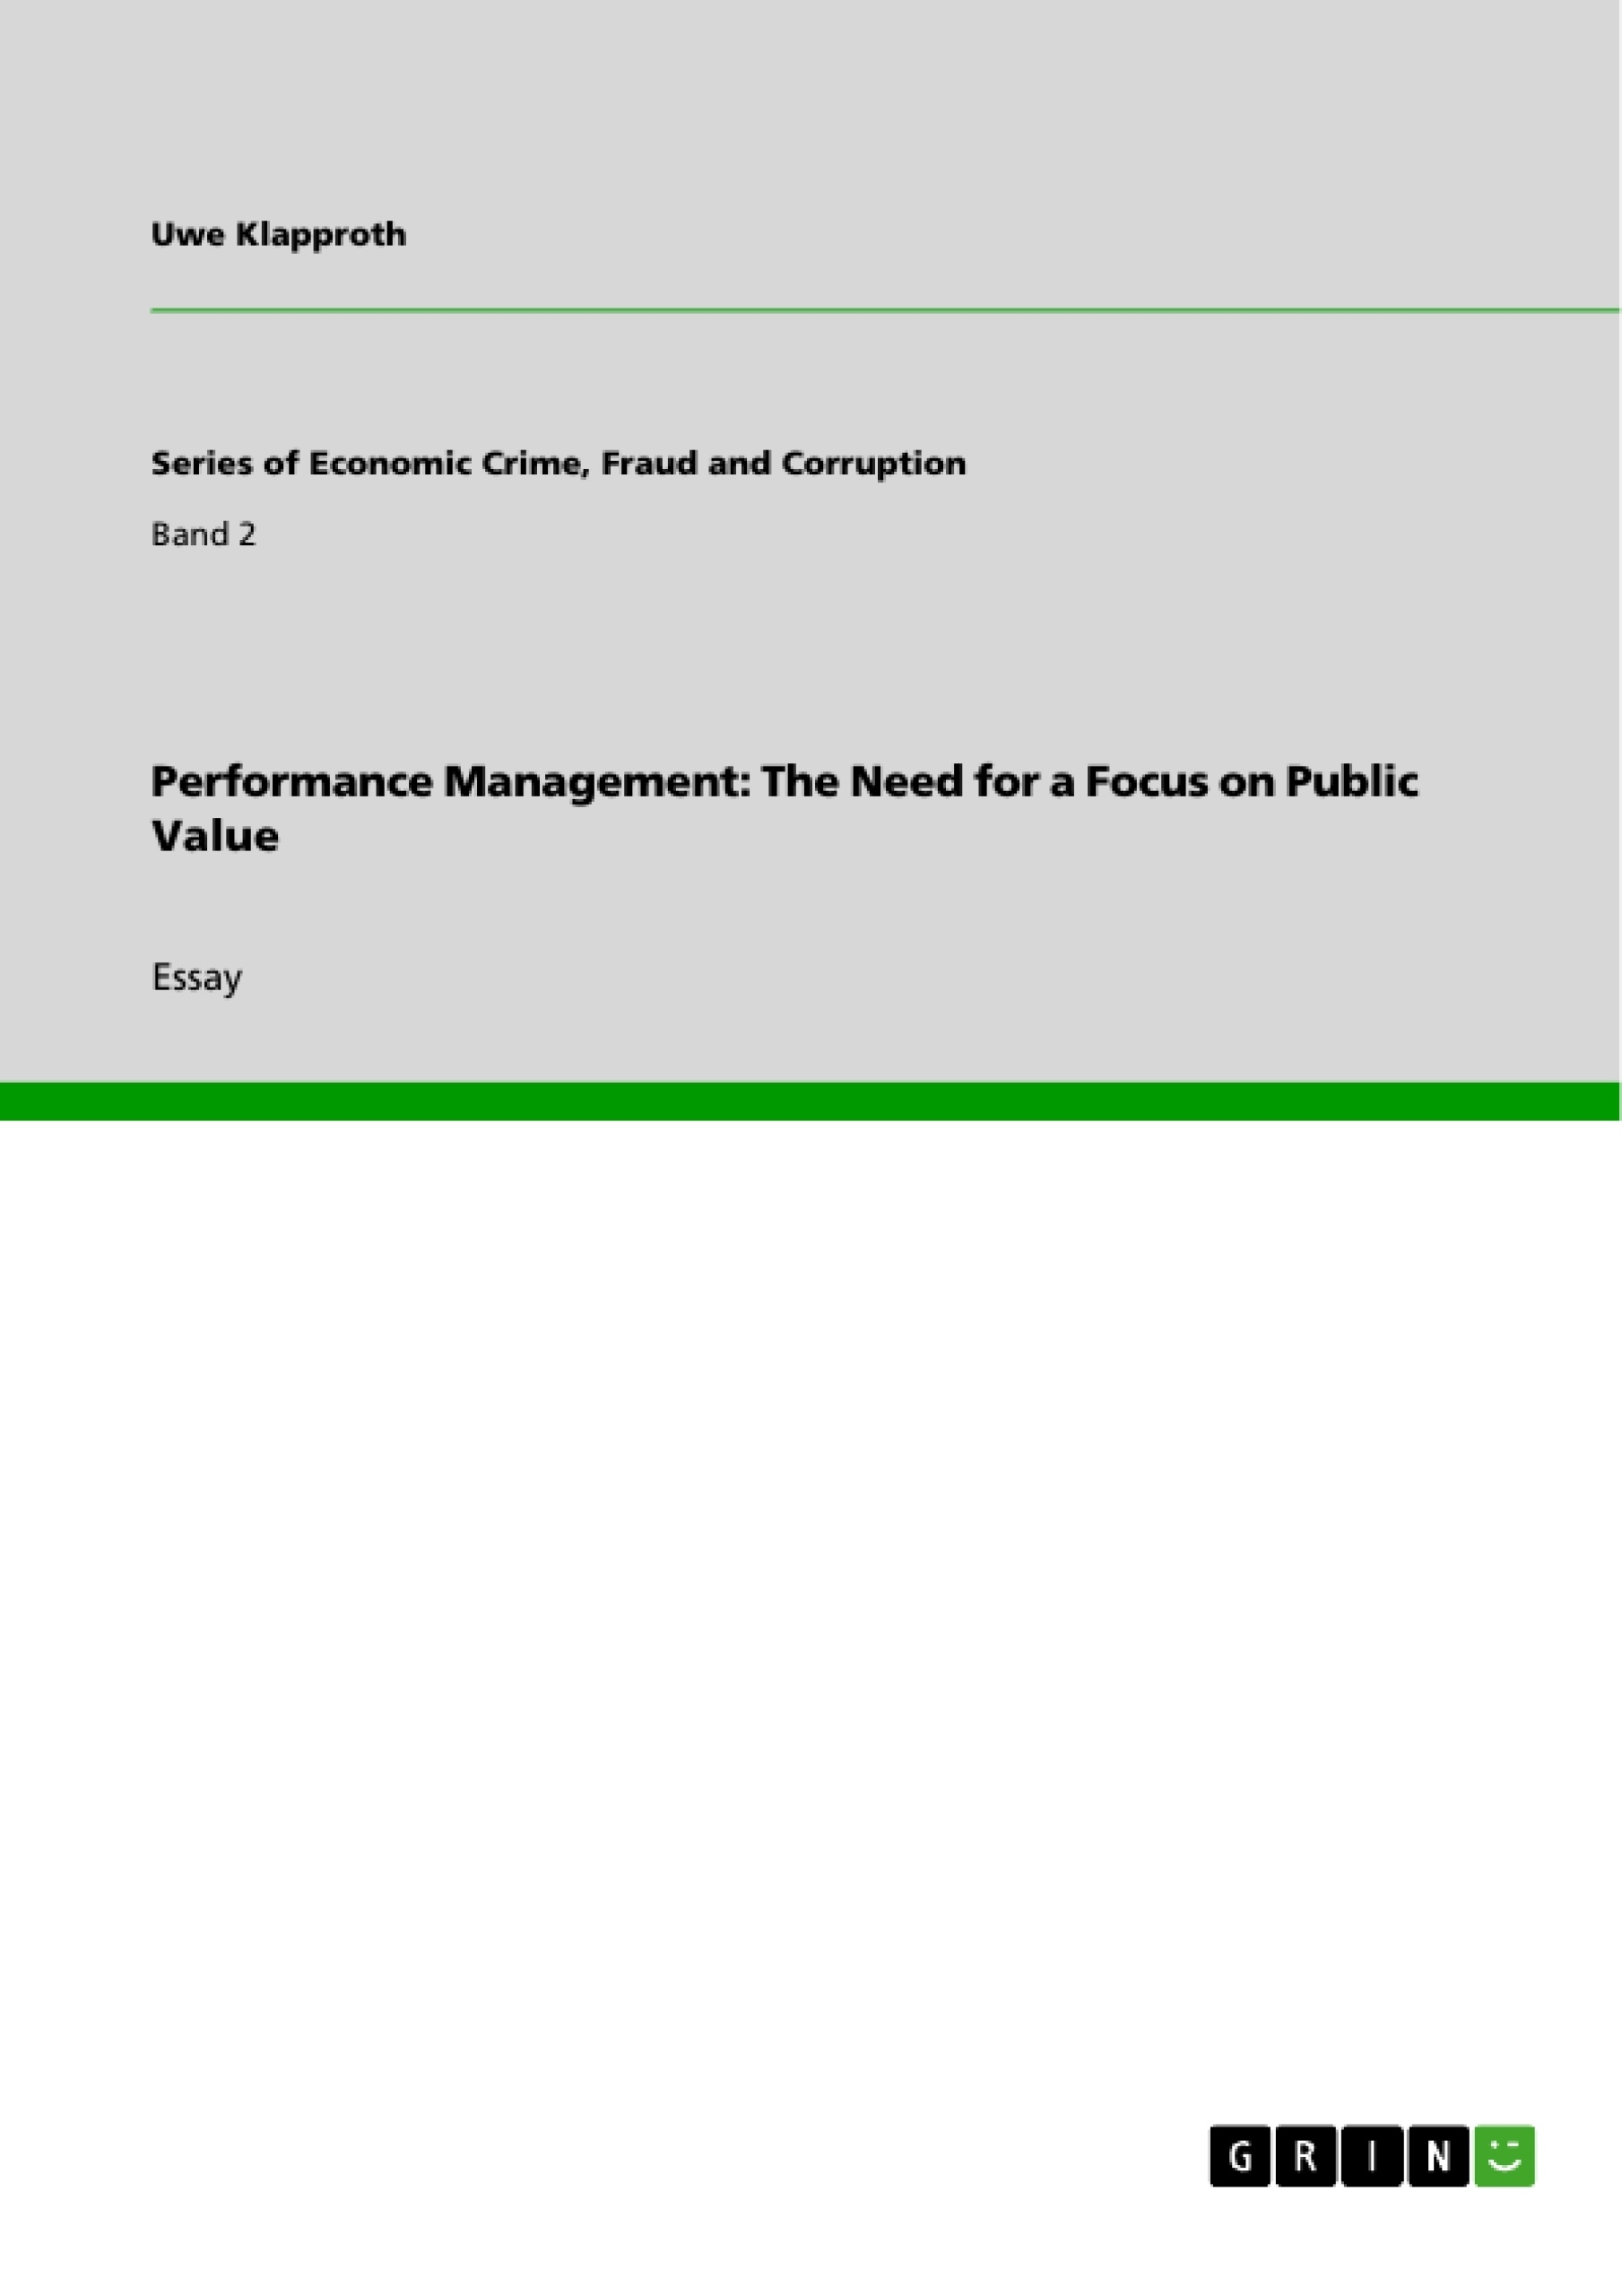 The Best Master Thesis in Economics